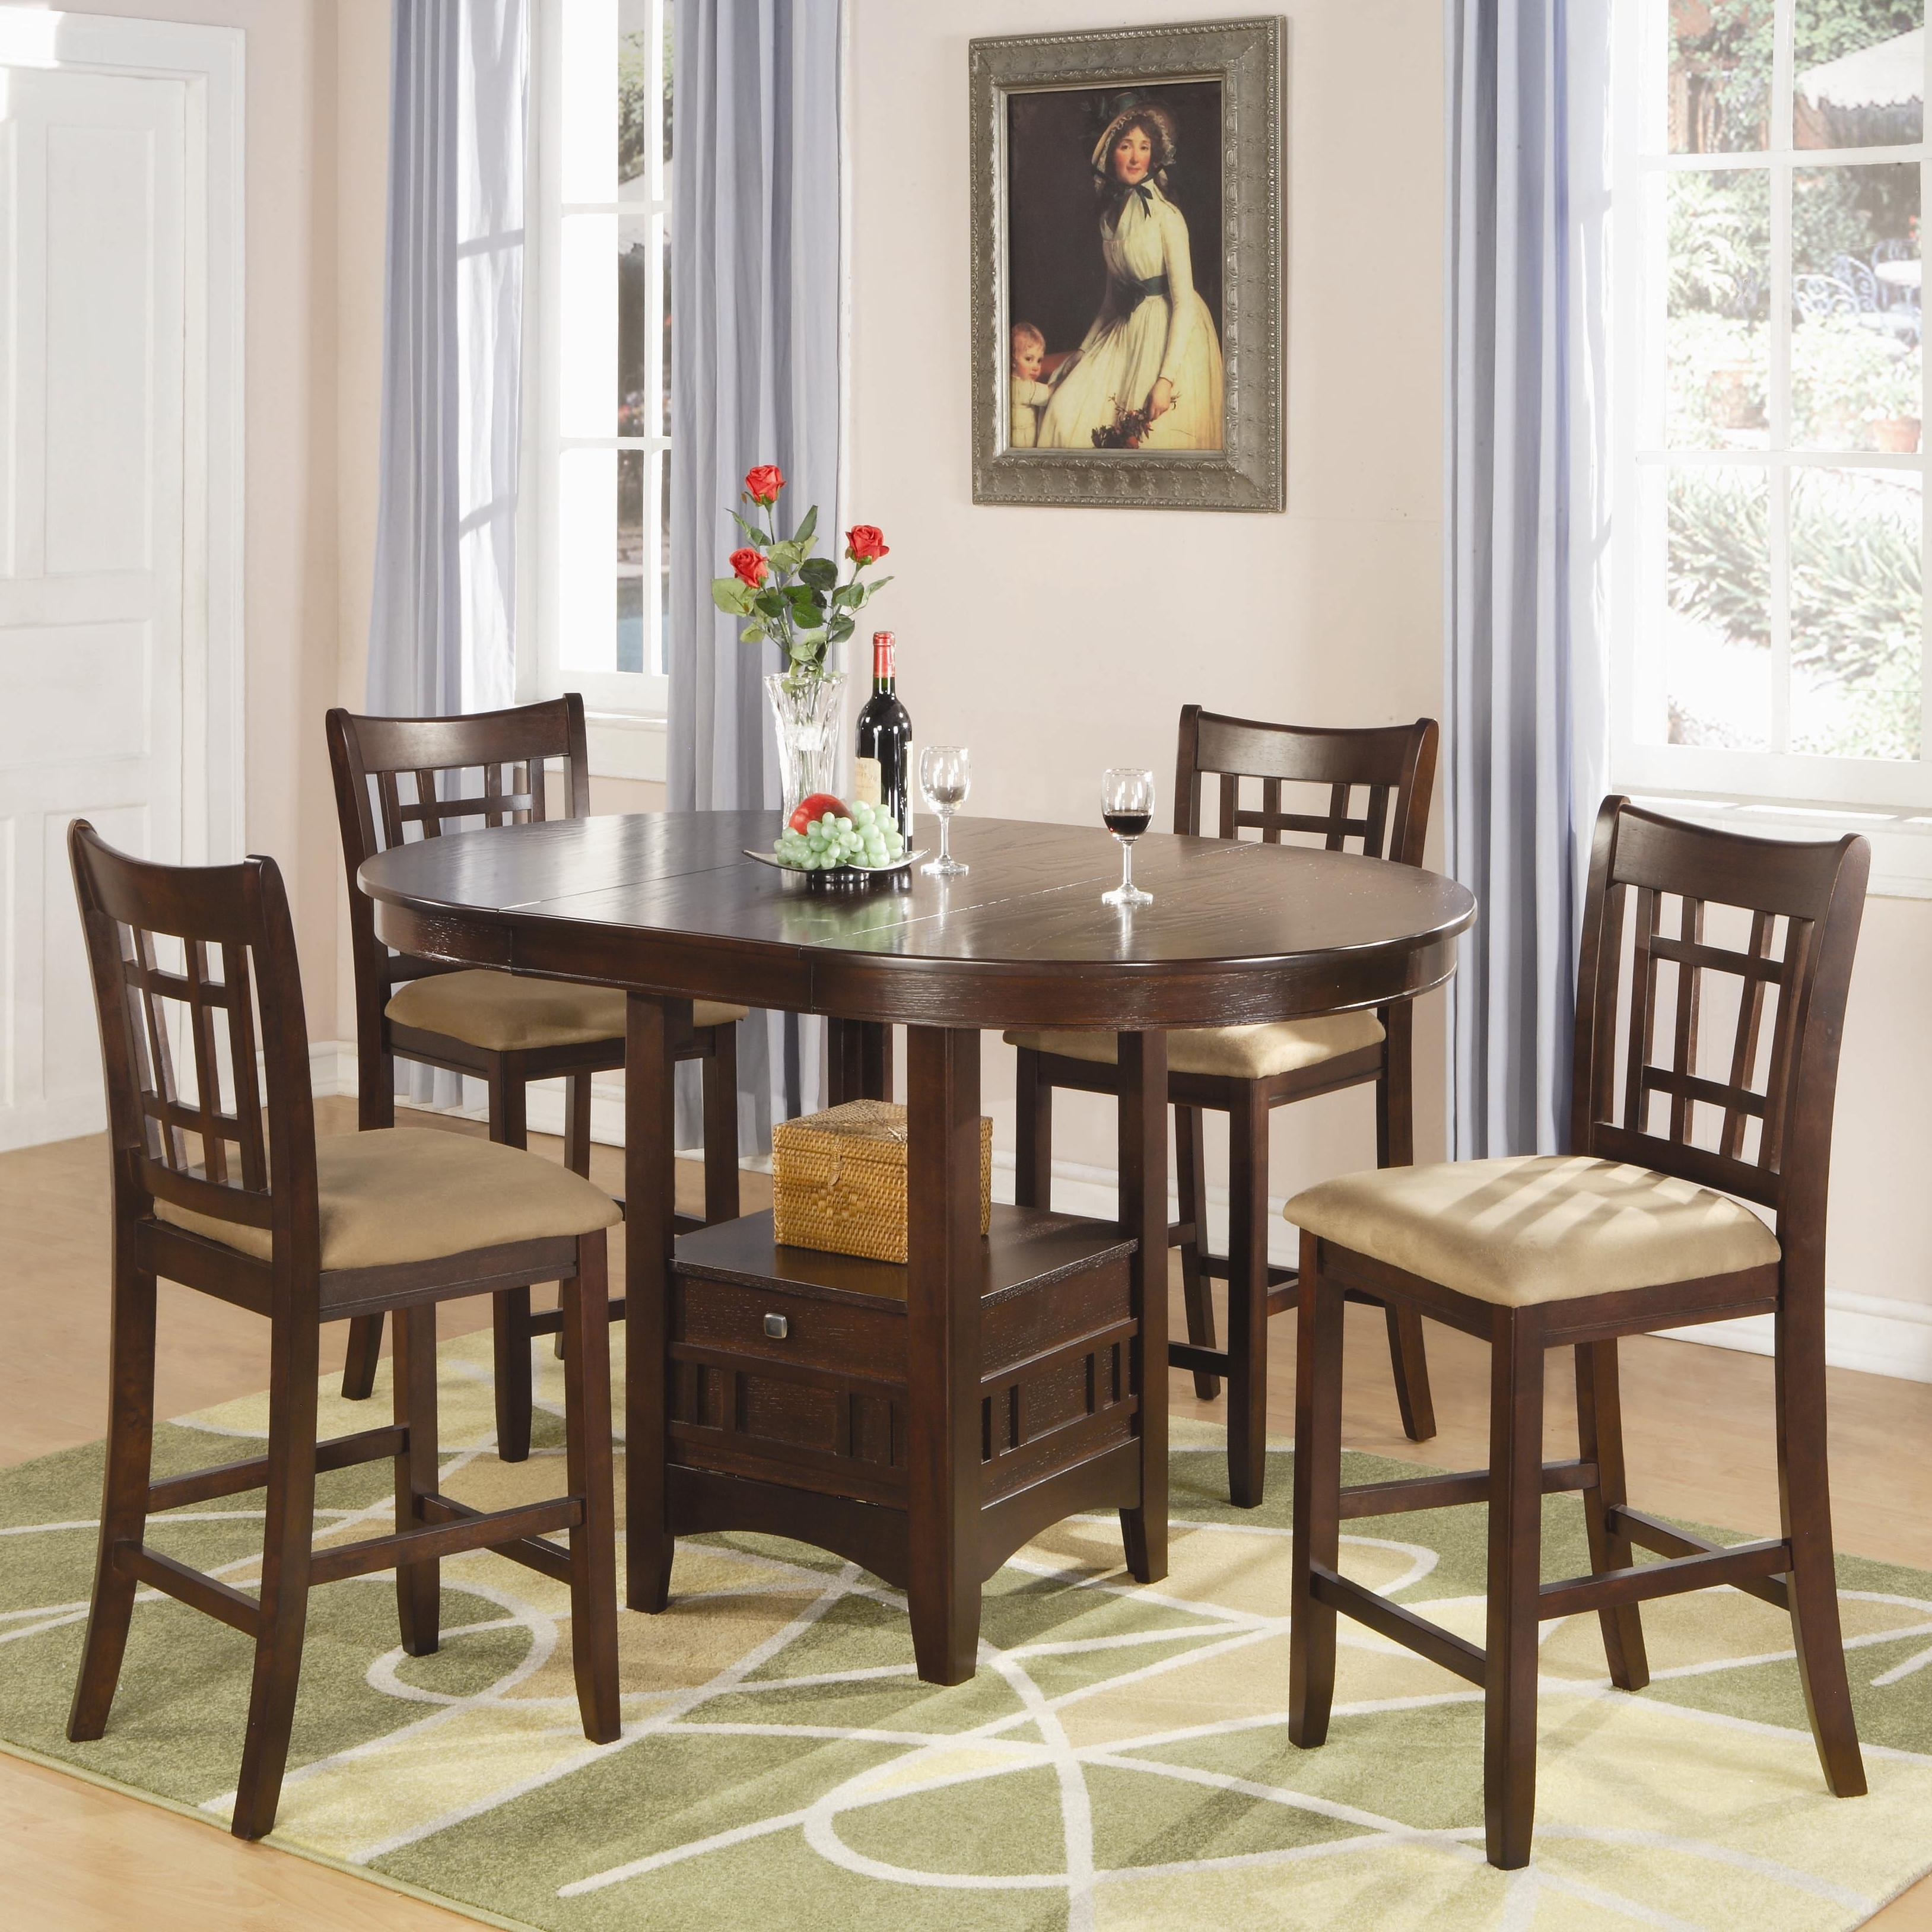 Newest Sofa Chairs With Dining Table Intended For Coaster – Find A Local Furniture Store With Coaster Fine Furniture (View 6 of 15)